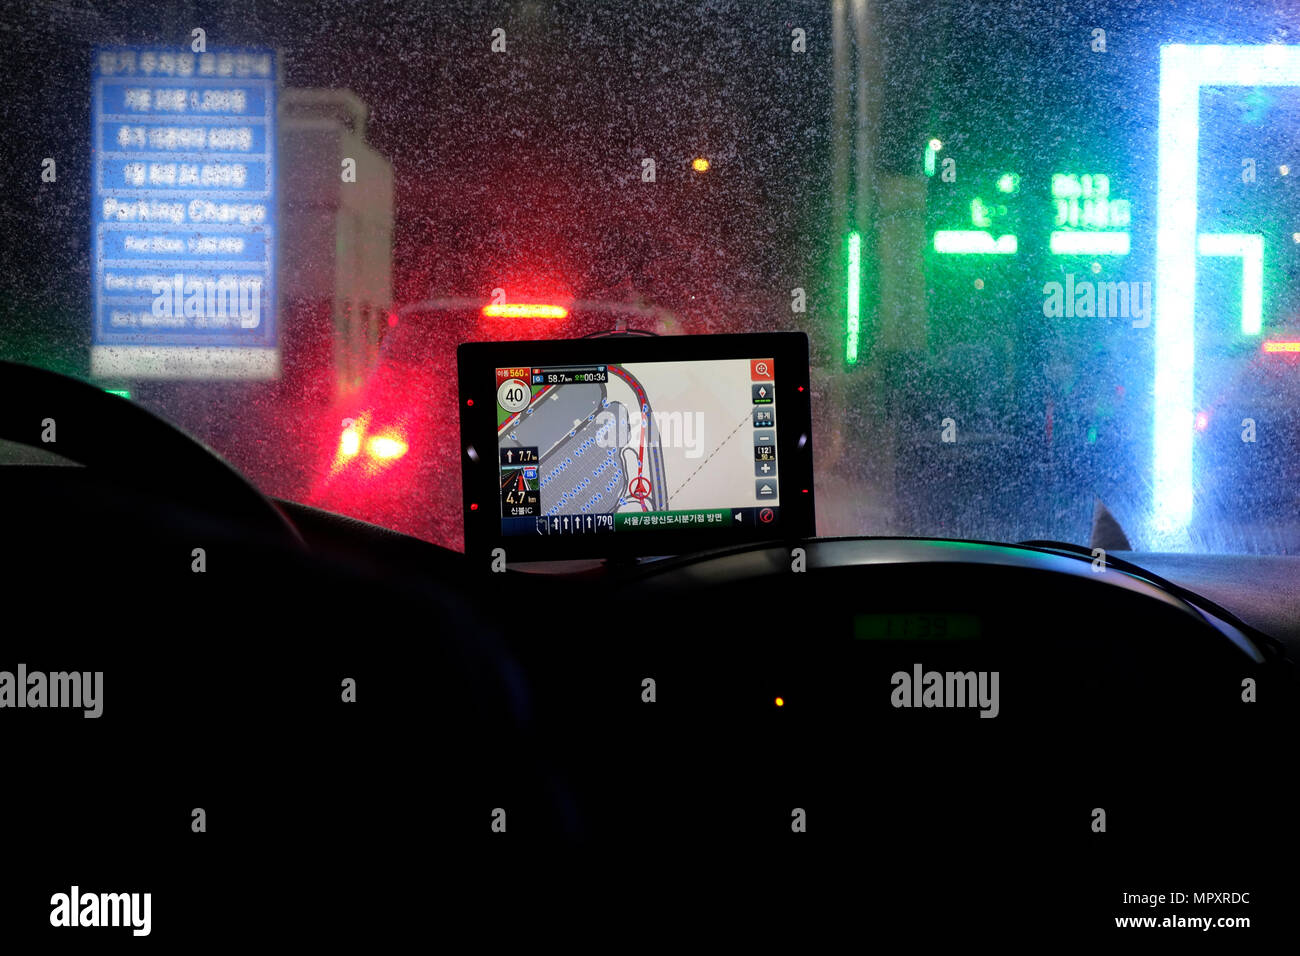 Satellite navigation car system showing live traffic information at night in the city of Seoul capital of South Korea - Stock Image